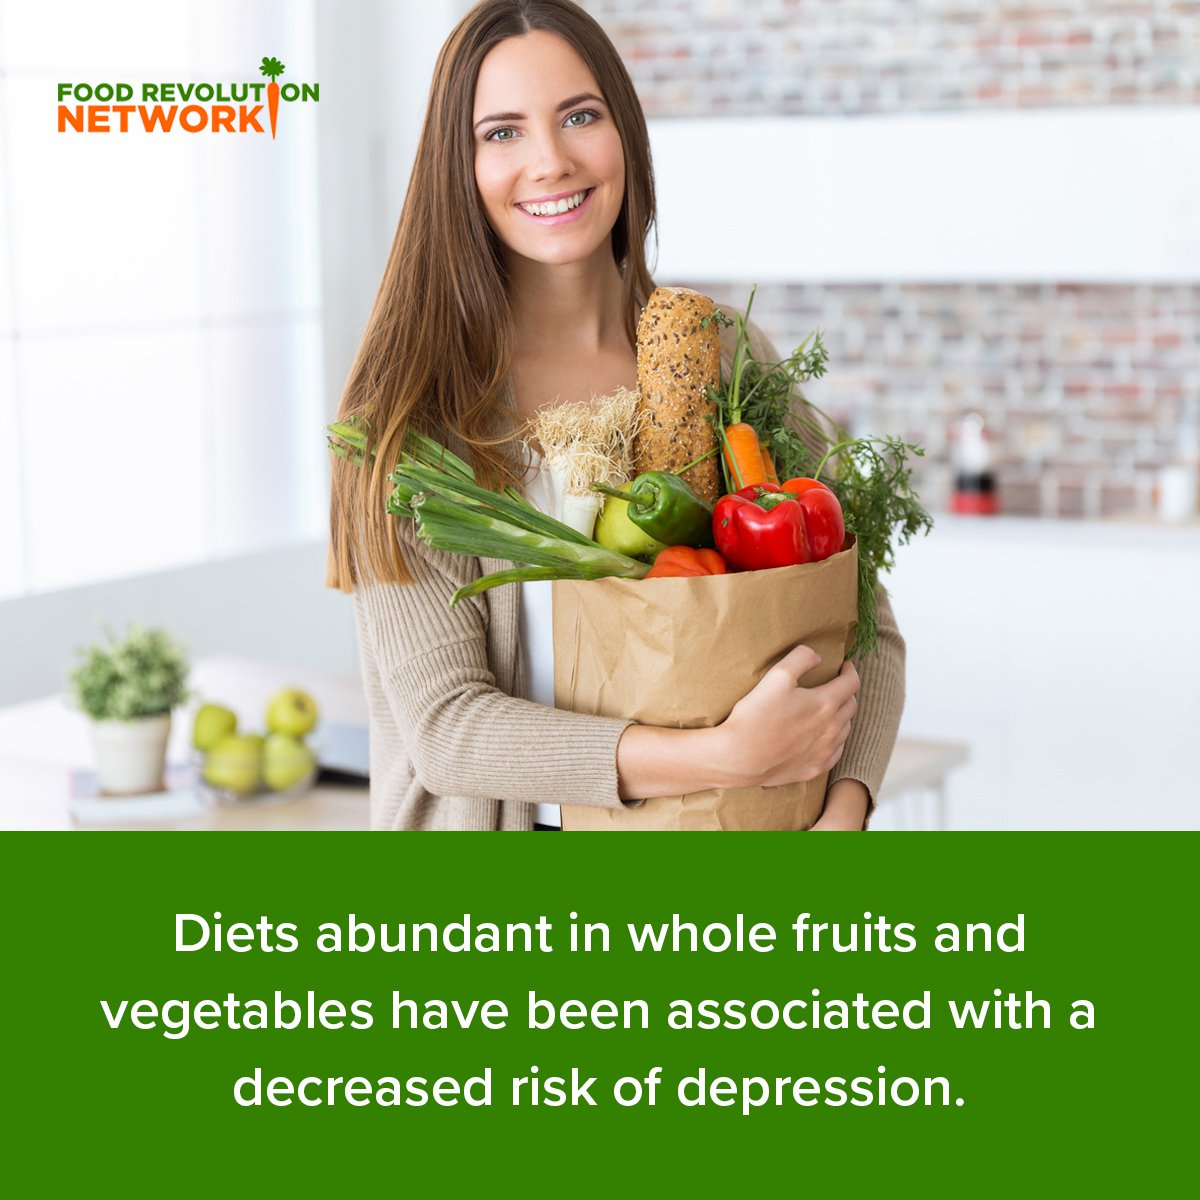 Diets abundant in whole fruits and vegetables have been associated with a decreased risk of depression.